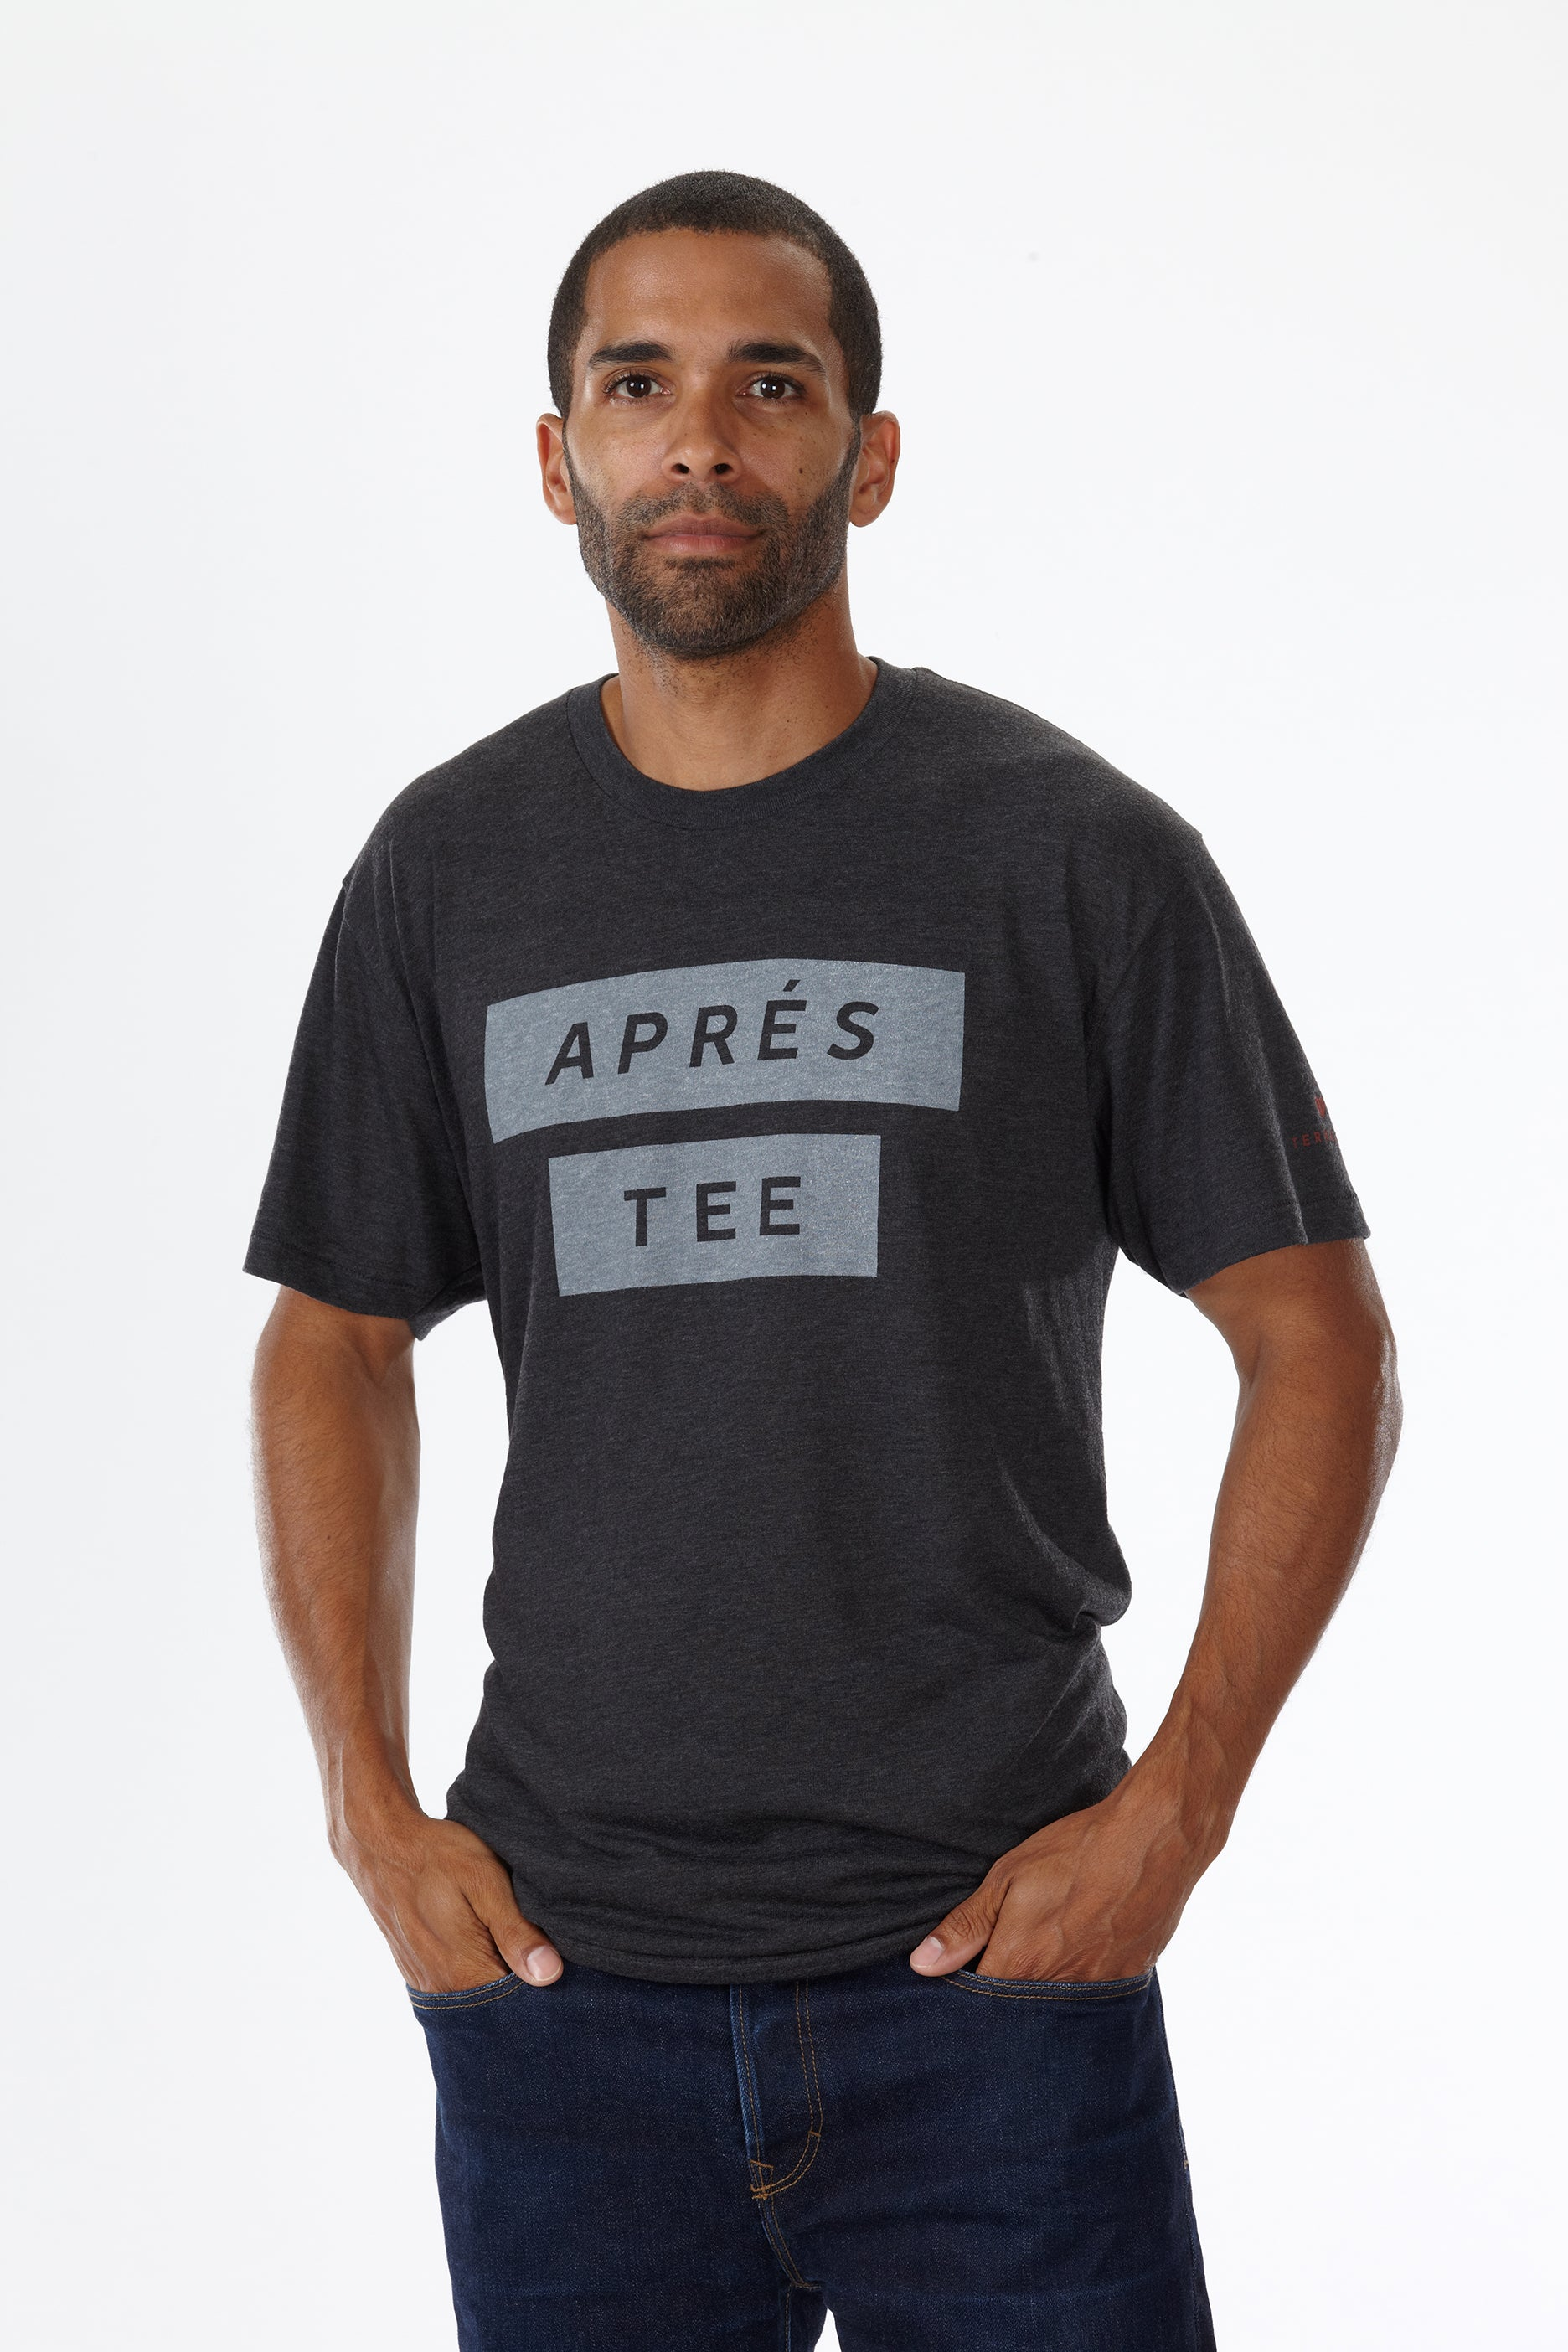 APRES (MEN'S) T-SHIRT by Terracea - Waterproof, Windproof, Weatherproof Technical Outerwear